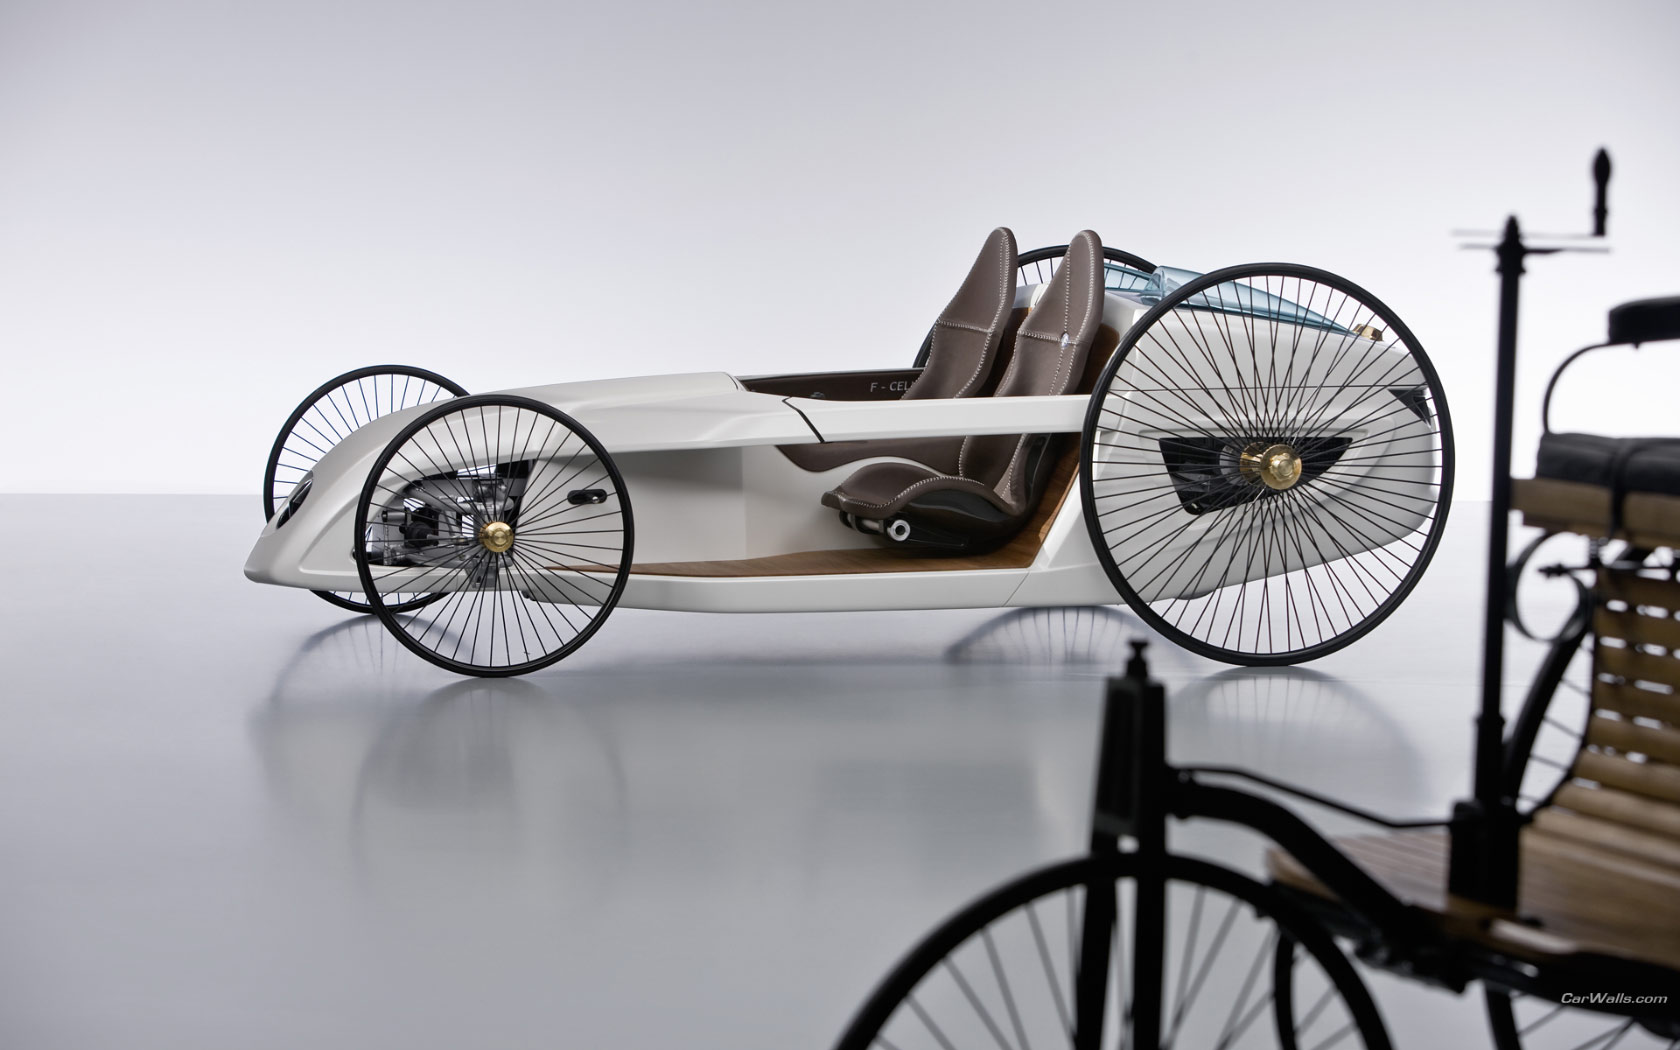 2019 Mercedes Benz F Cell Roadster Concept photo - 2